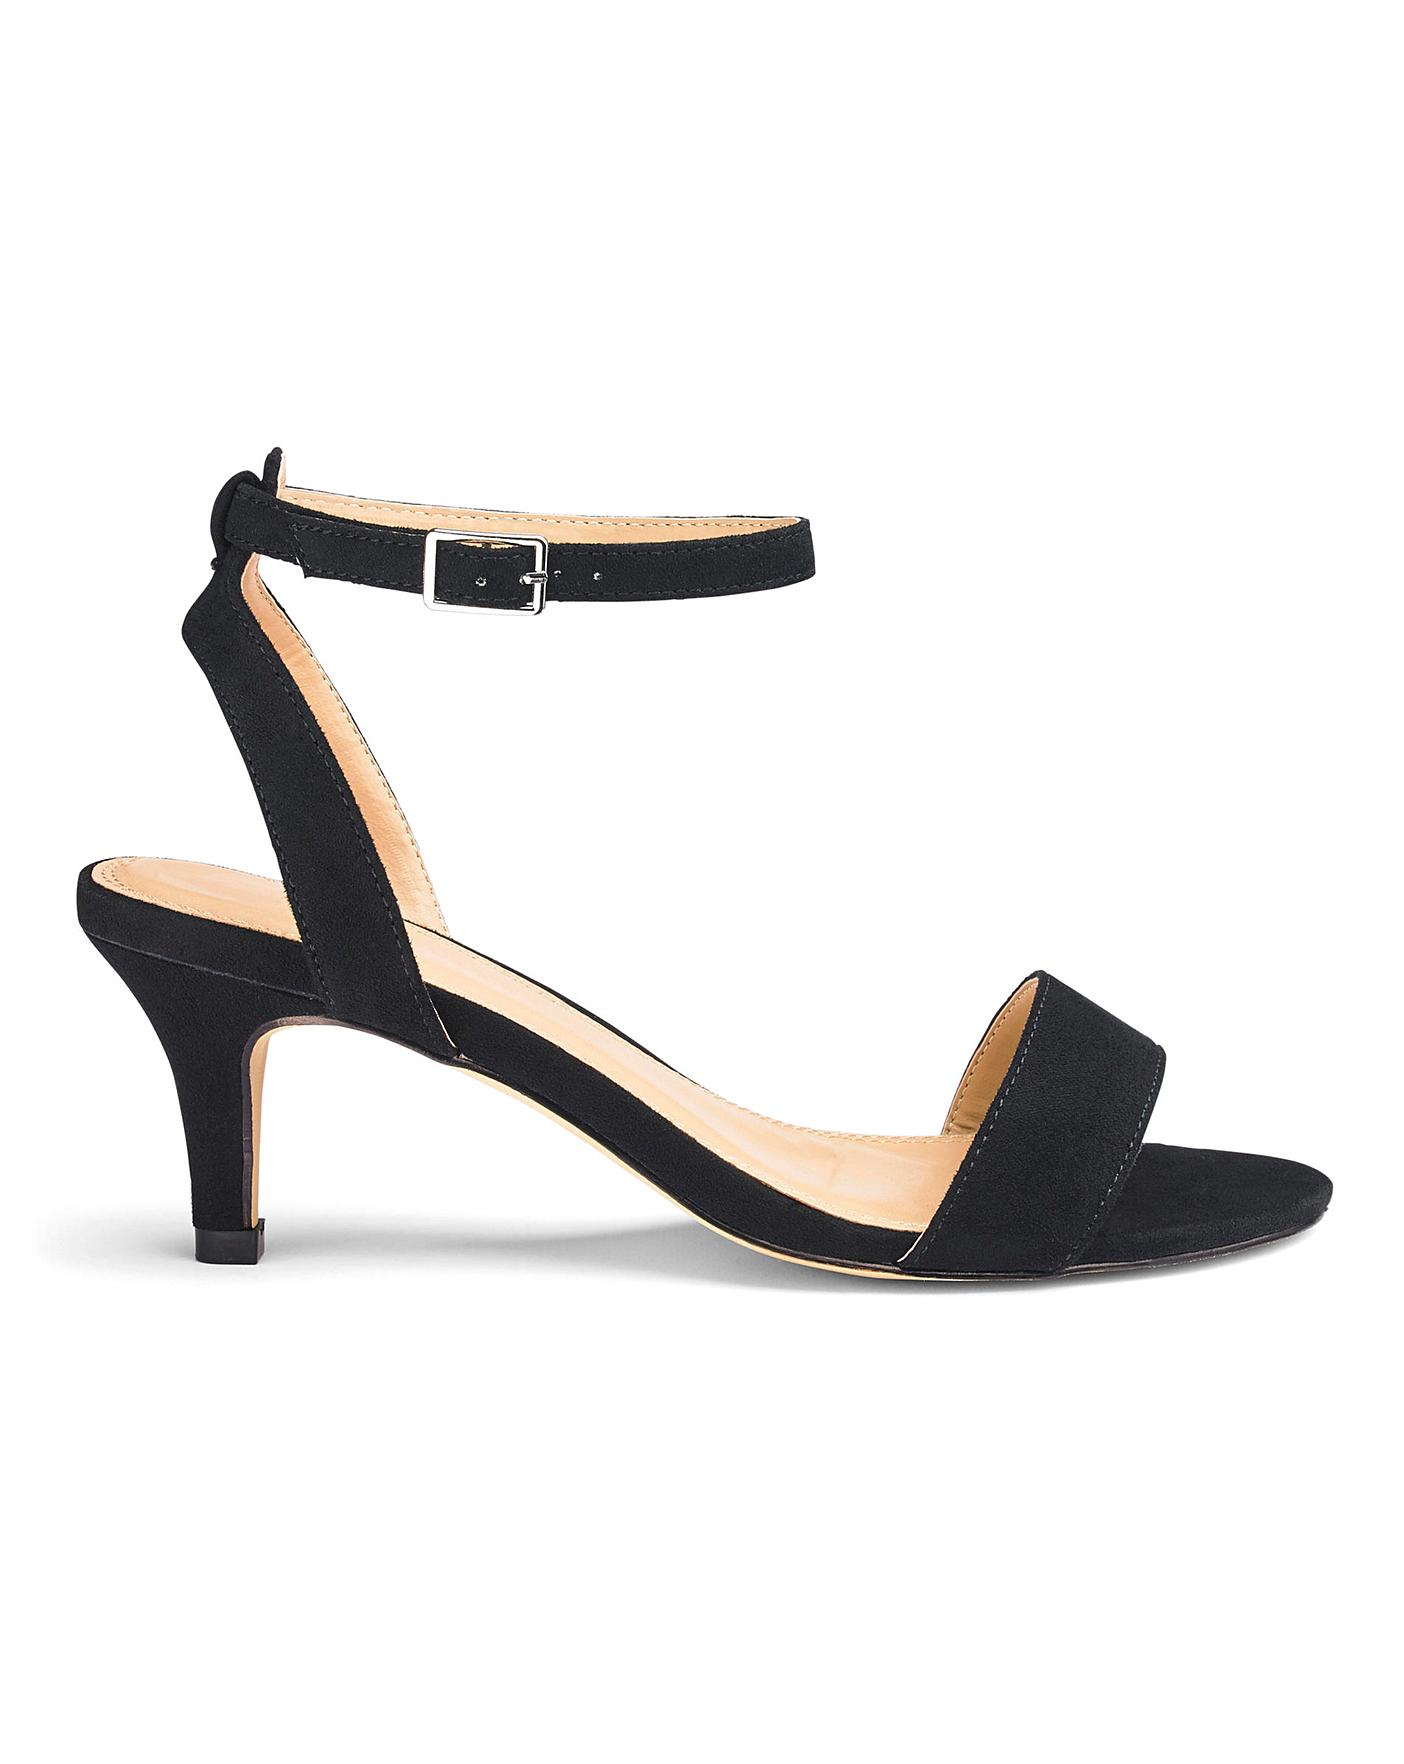 outlet stable quality hot sale online Kitten Heel Strappy Sandals EEE Fit | Simply Be